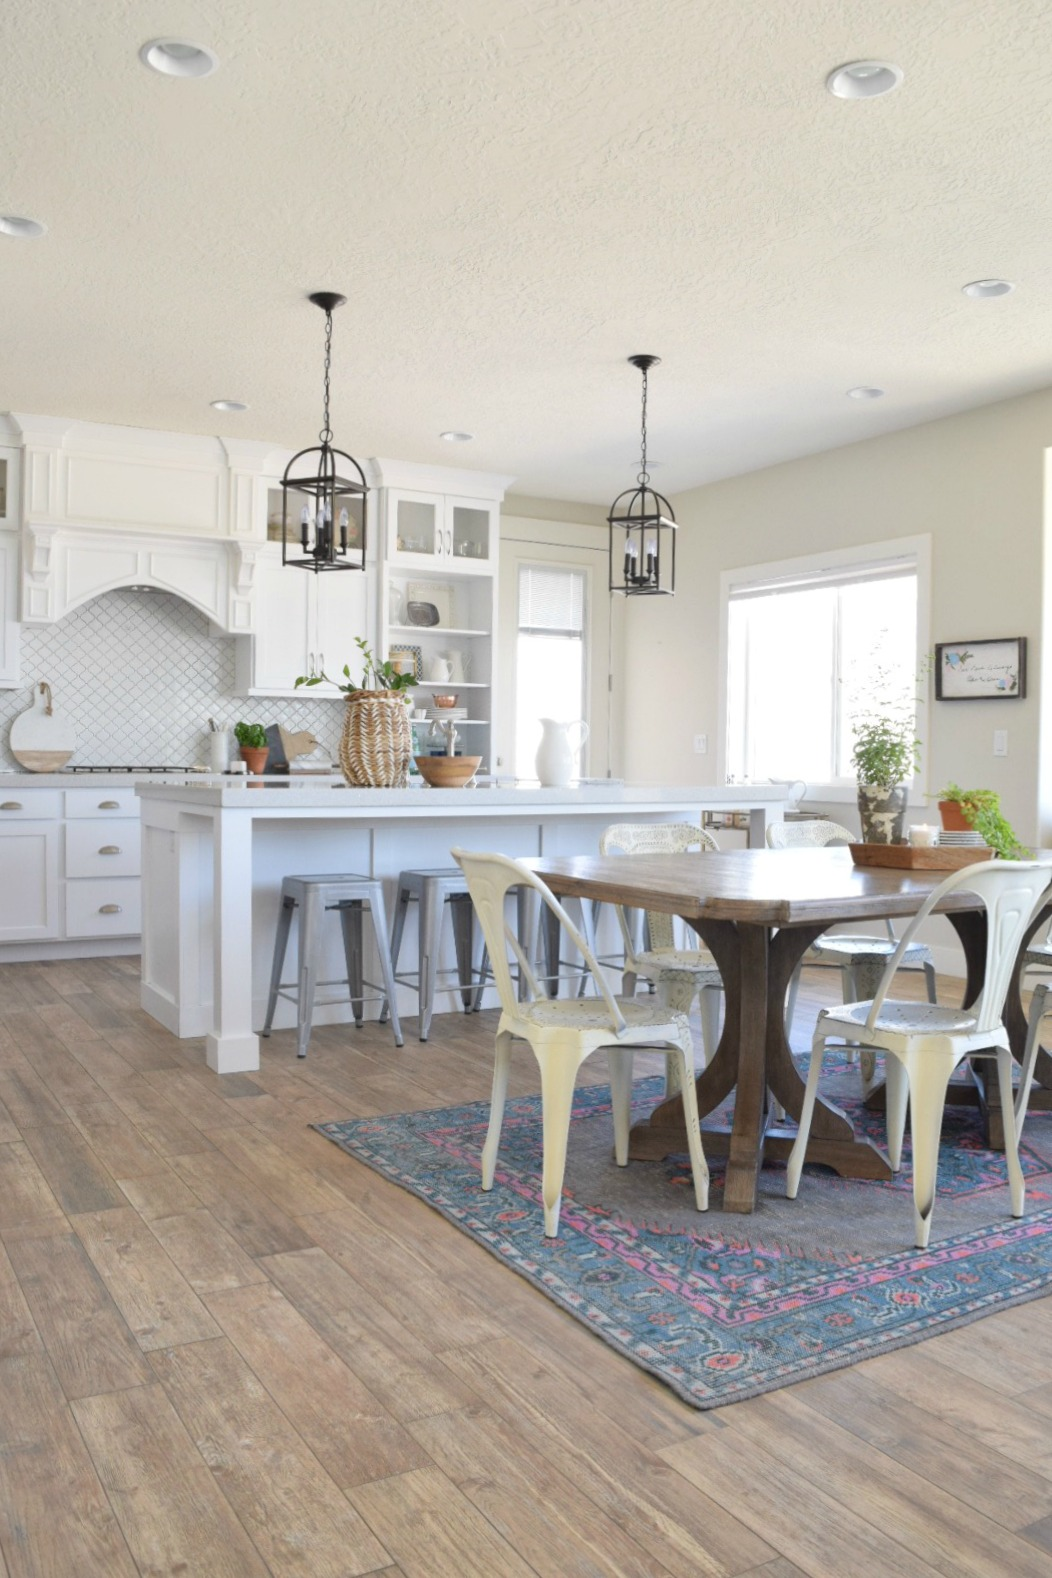 Decorating Small Open Floor Plan Living Room And Kitchen: Take Home Designer Series- White Kitchen And Great Room